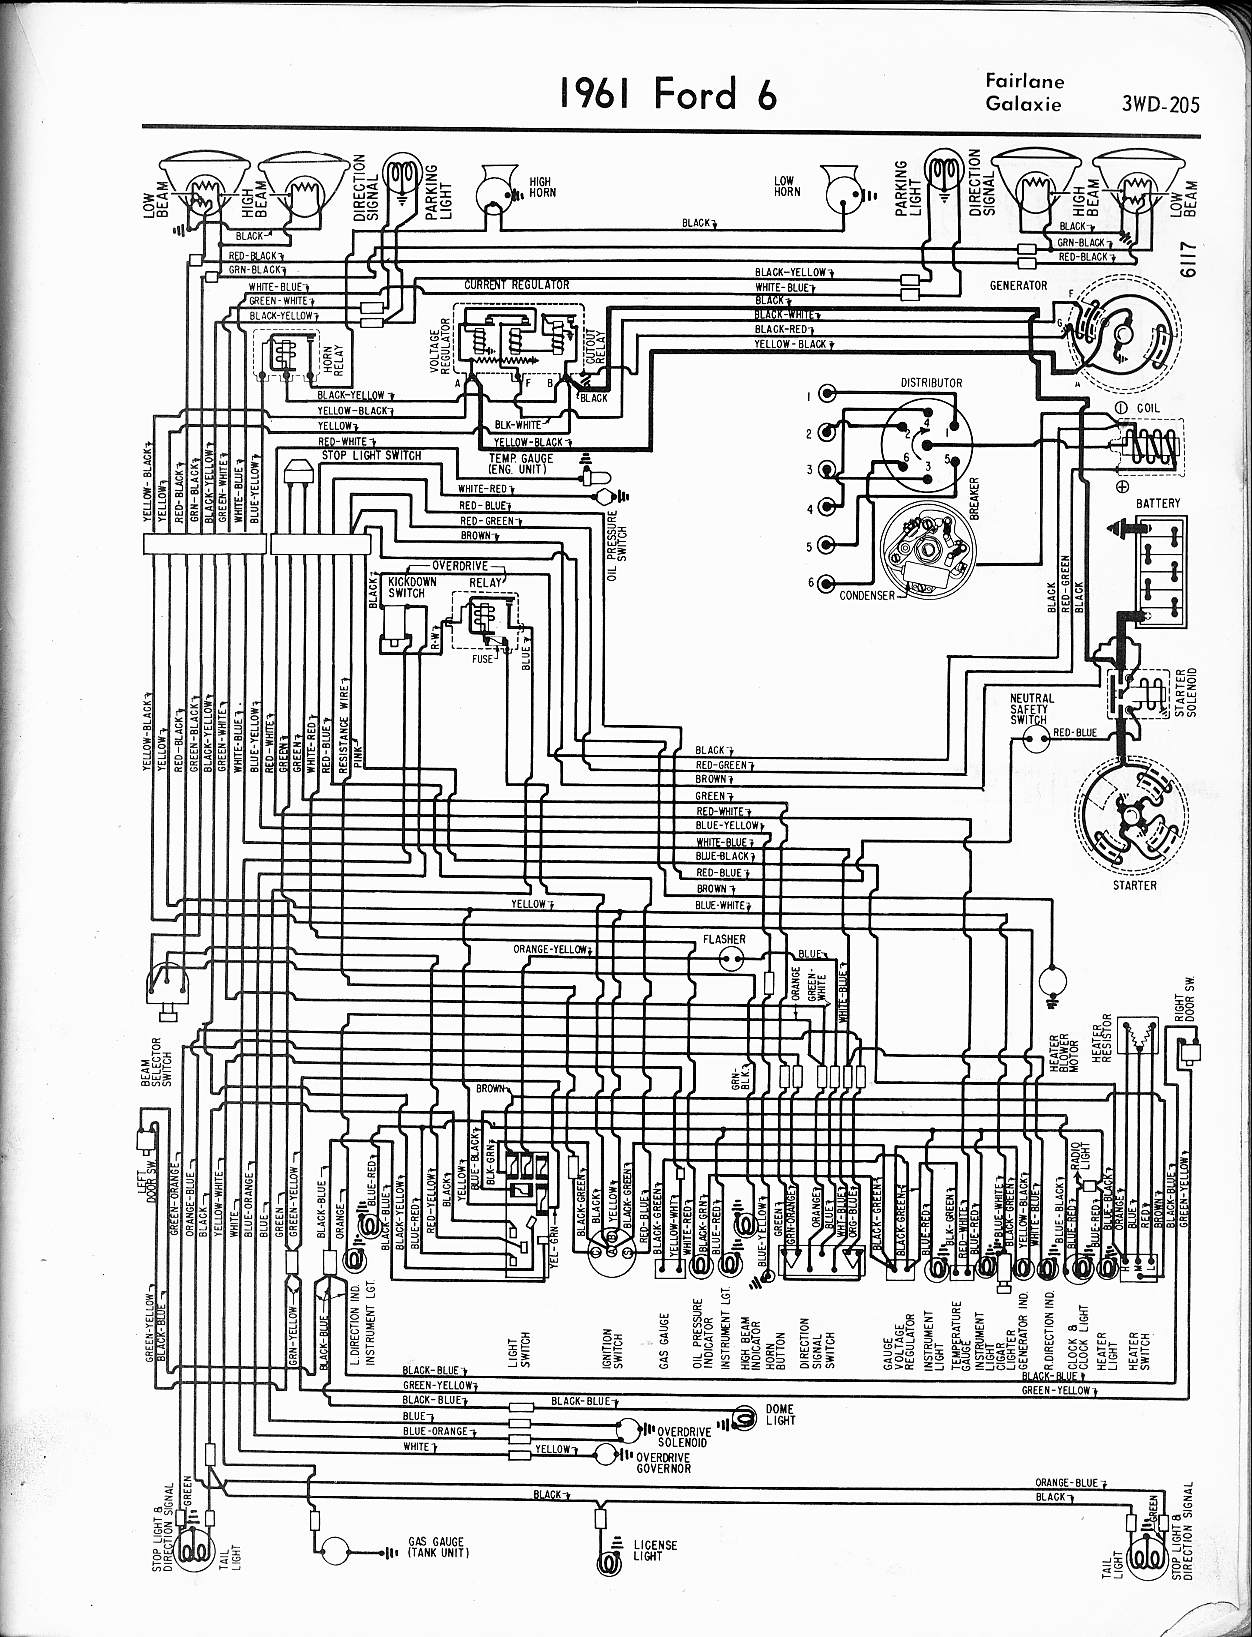 MWire5765 205 wiring diagram model a ford the wiring diagram readingrat net Ford E 350 Wiring Diagrams at couponss.co